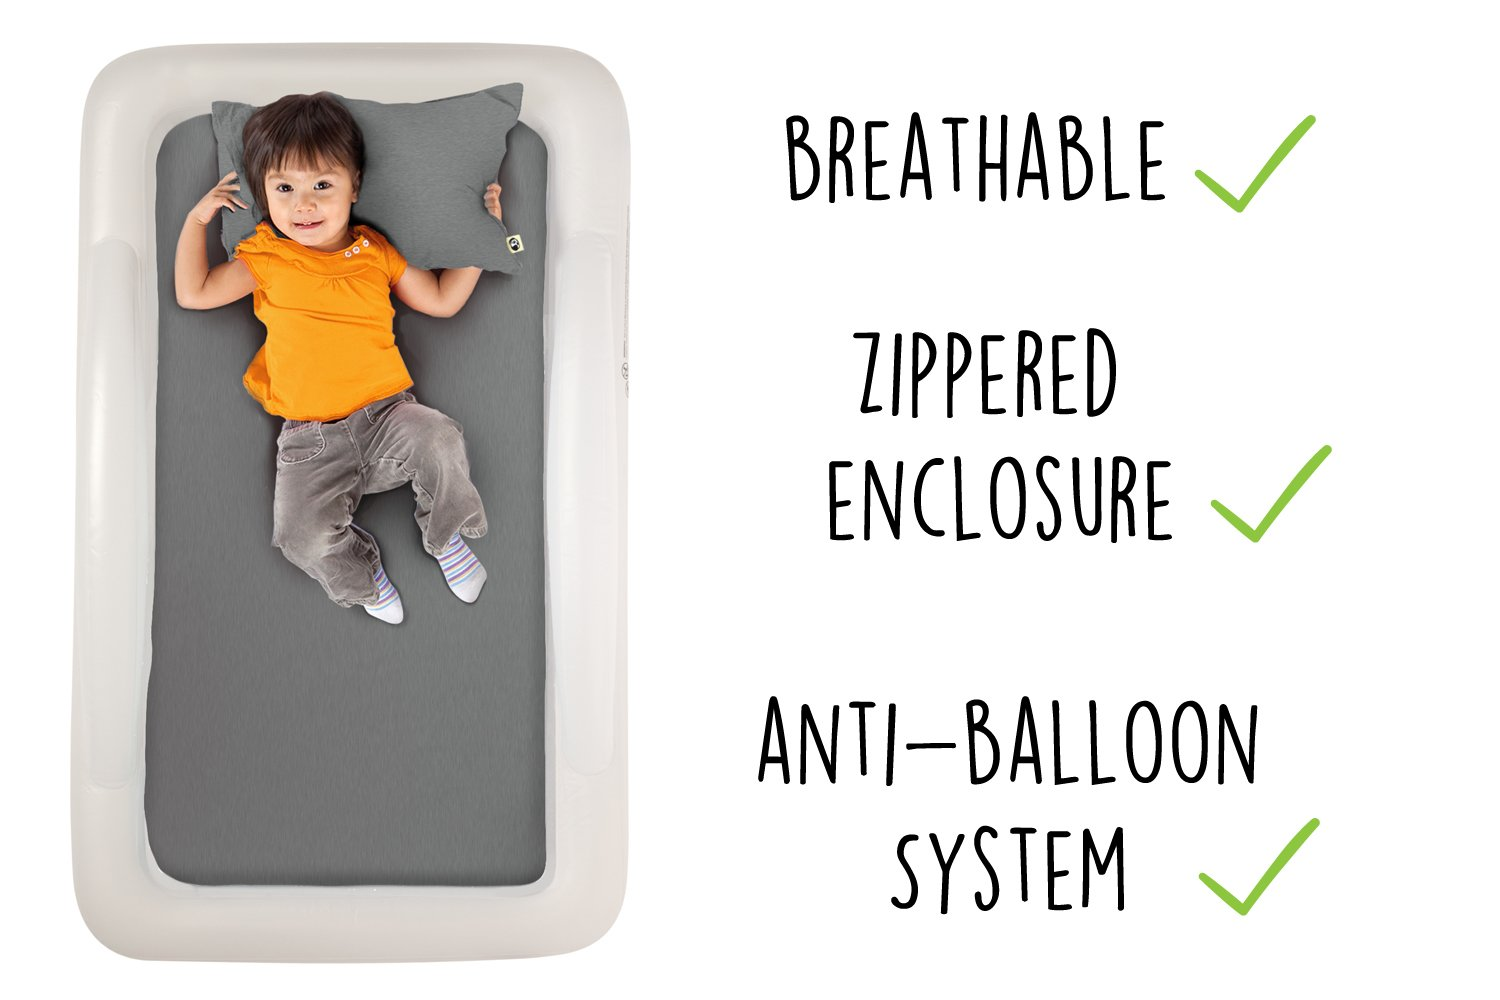 The Shrunks Natural Fibre - Water-proof Toddler Pillow and Cover, Grey by The Shrunks (Image #4)